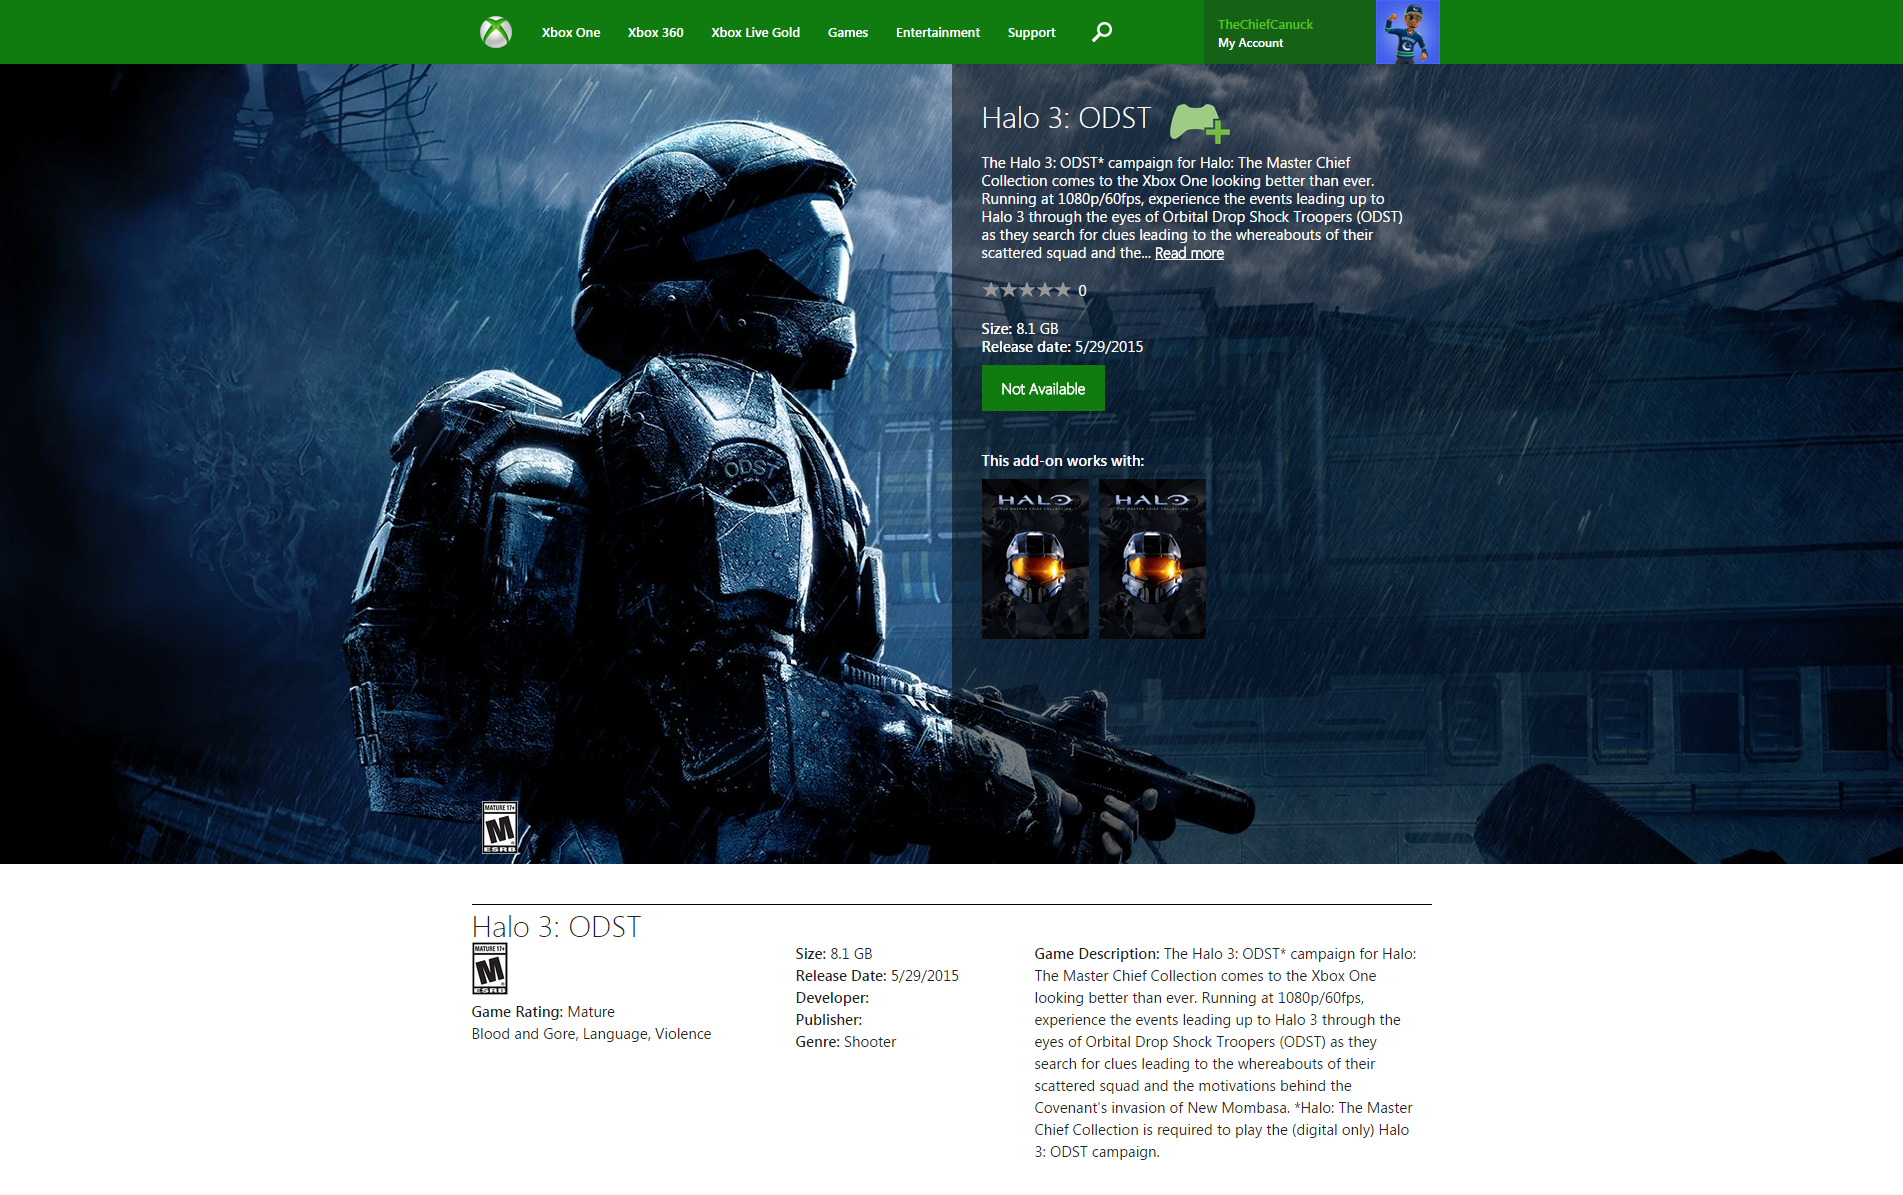 Halo 3 odst release date halo the master chief collection halo 3 odst publicscrutiny Image collections